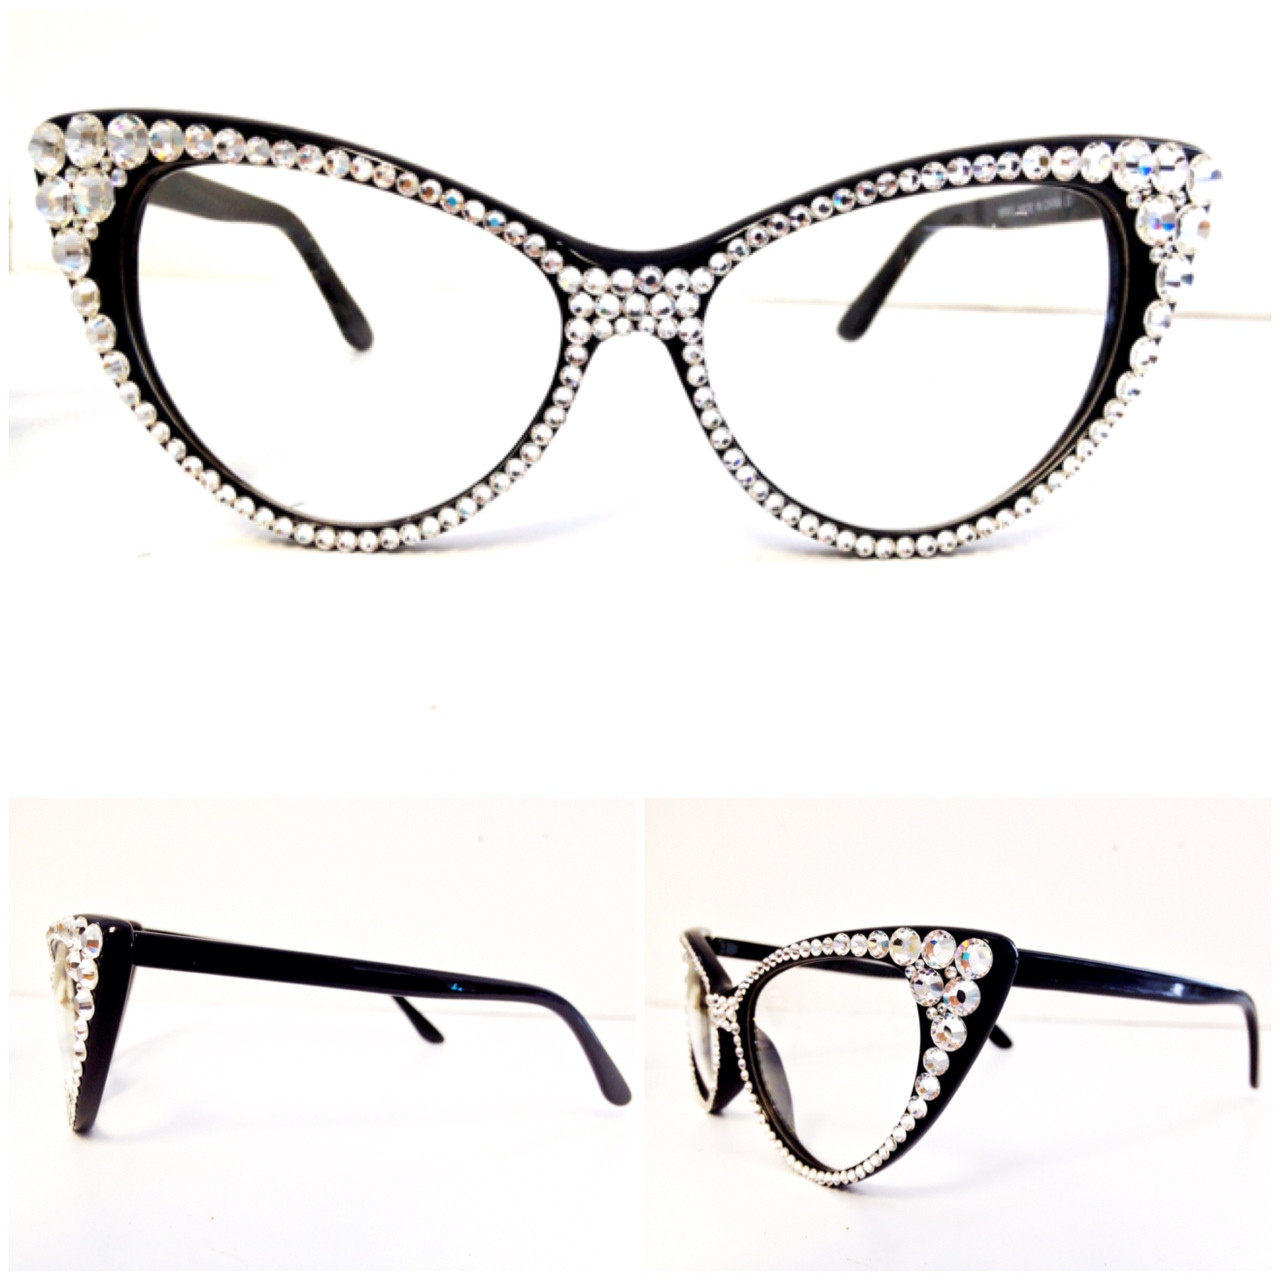 Cat Eyeglass Frames : Cats With Glasses - Viewing Gallery